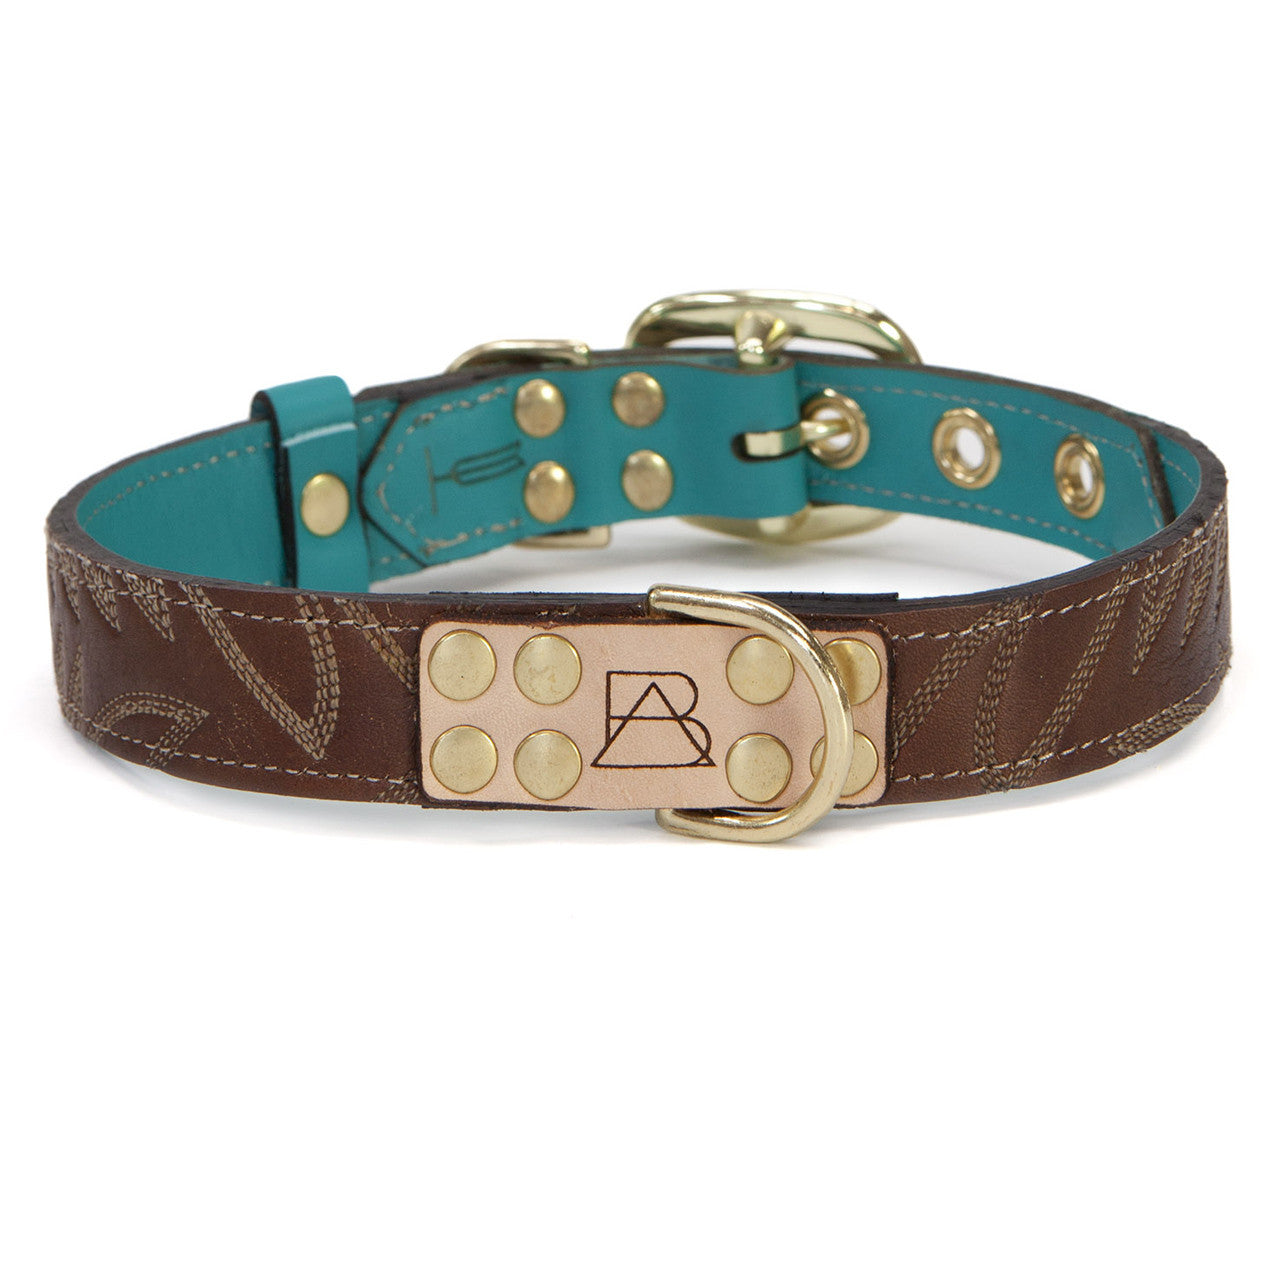 Turquoise Dog Collar with Dark Brown Leather + White Stitching (front view)